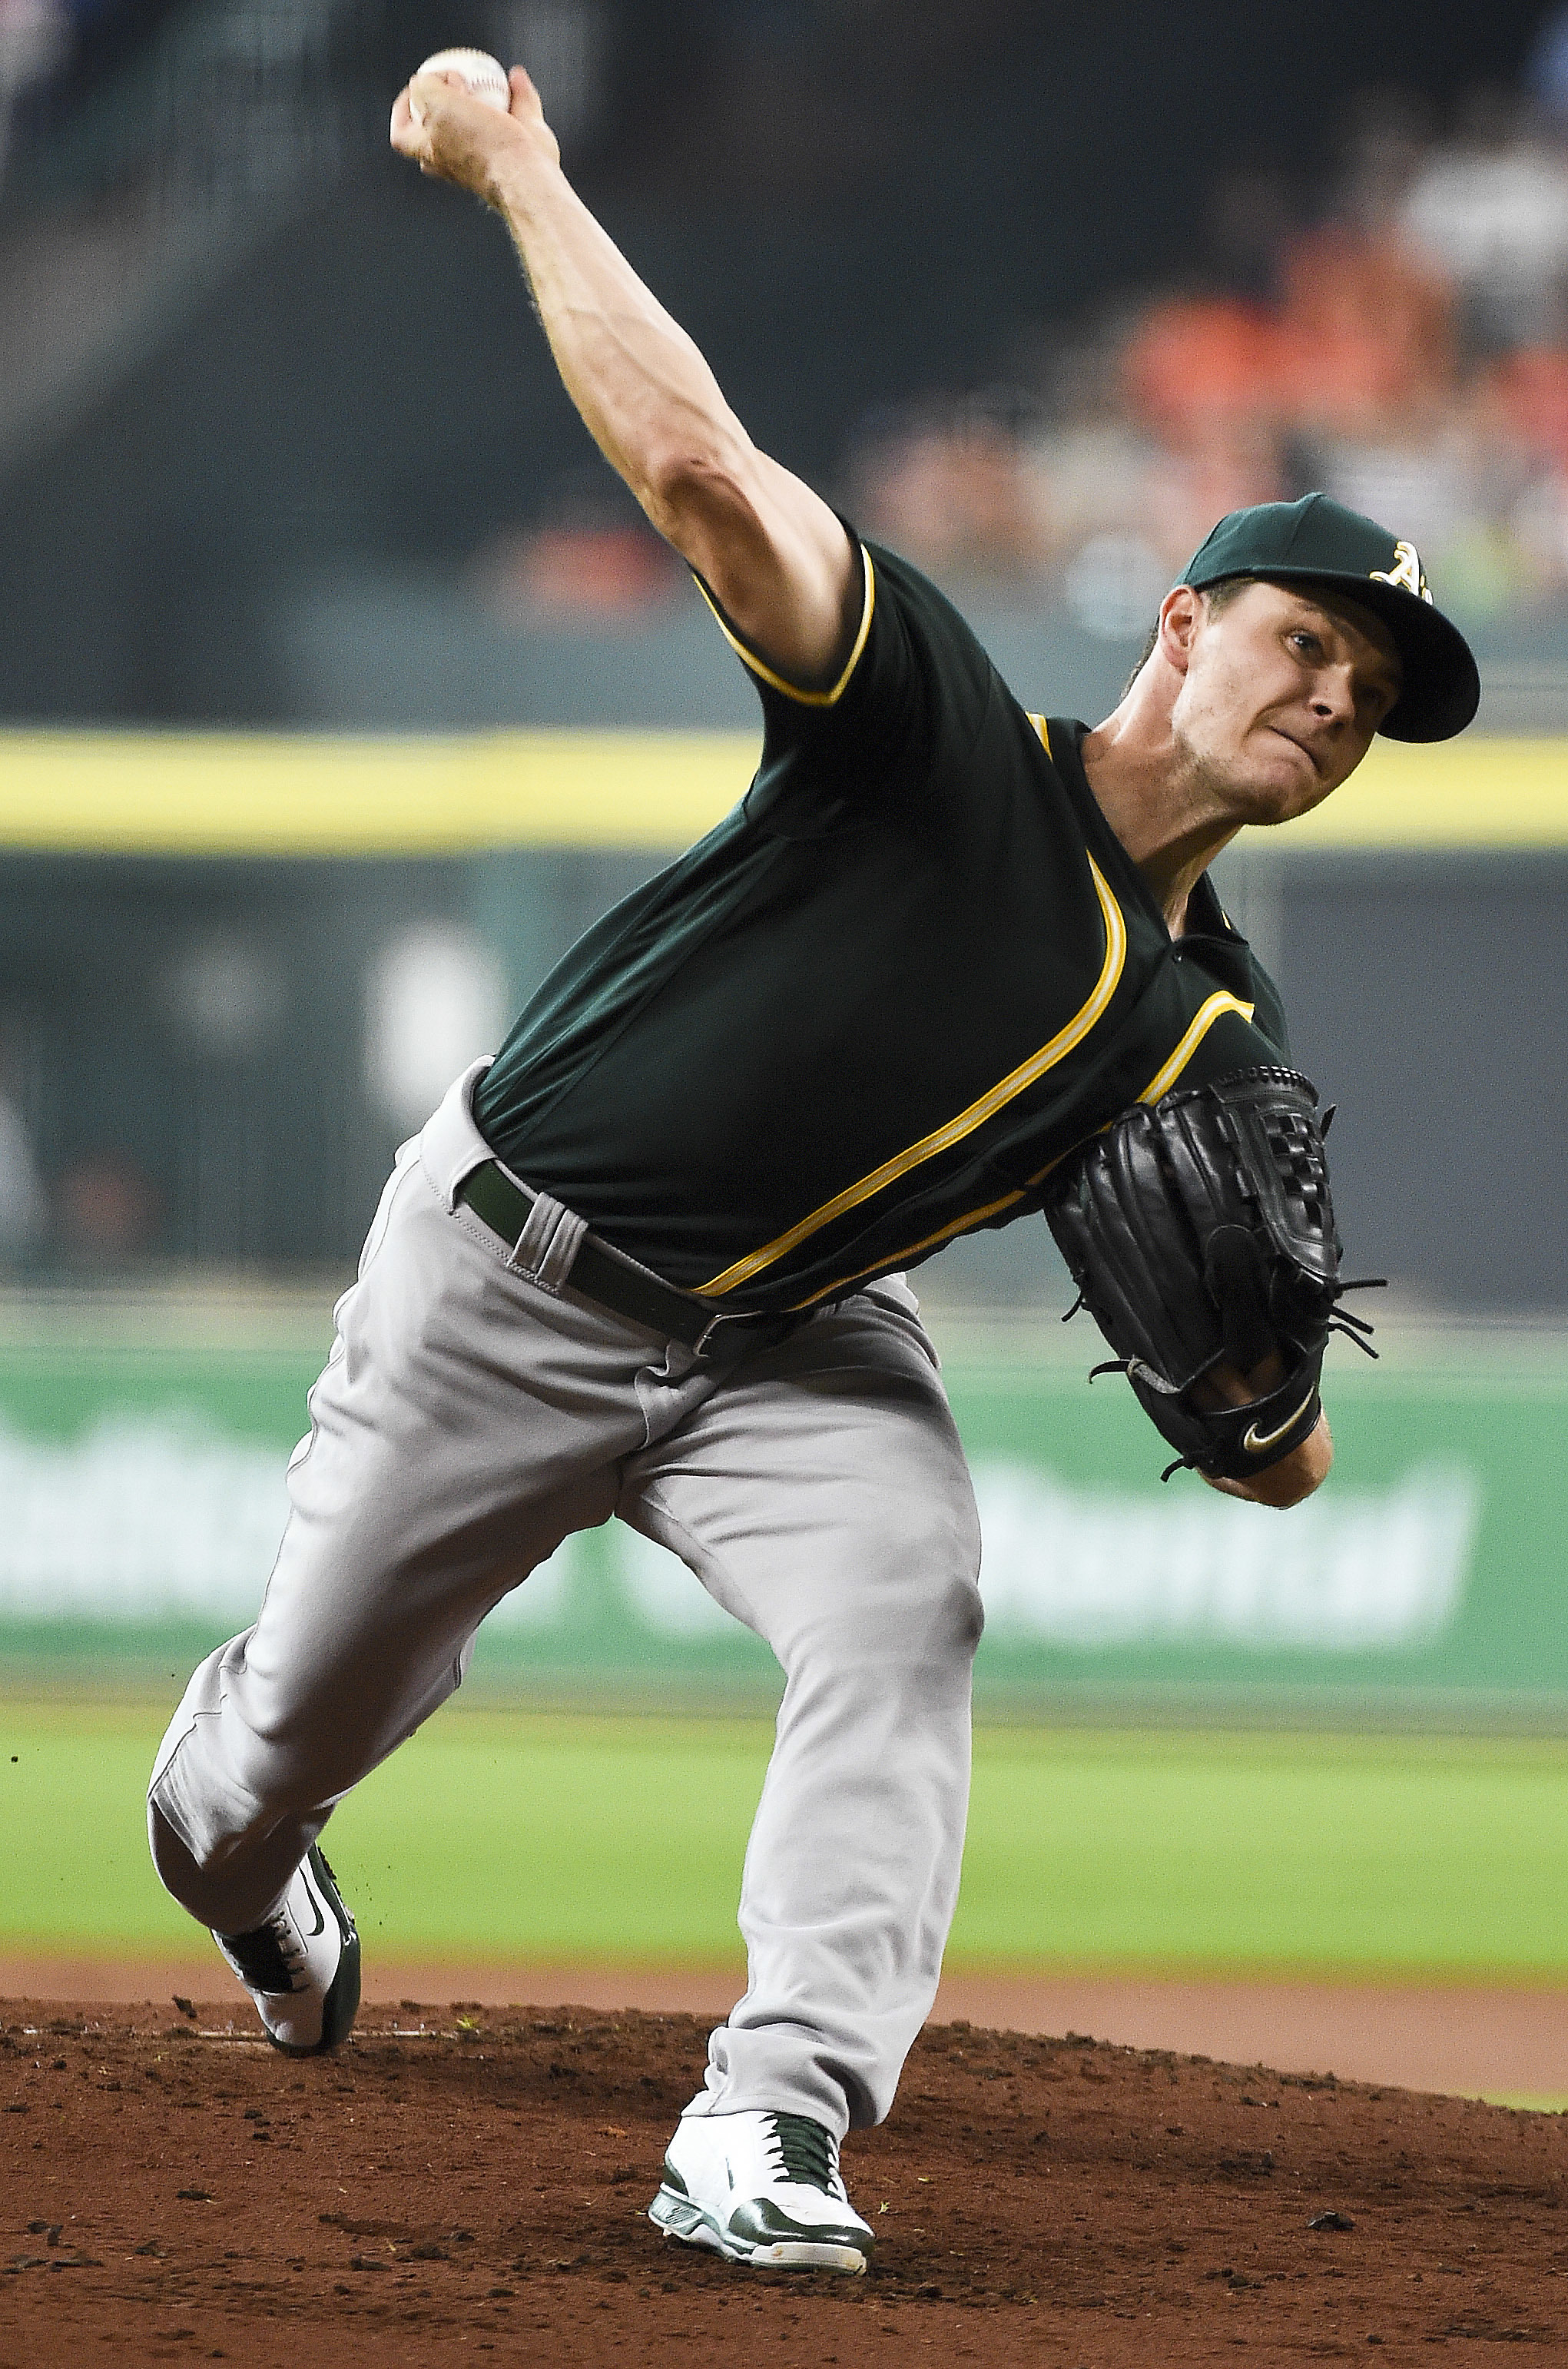 Oakland Athletics starting pitcher Sonny Gray delivers during the first inning of a baseball game against the Houston Astros, Sunday, June 5, 2016, in Houston. (AP Photo/Eric Christian Smith)